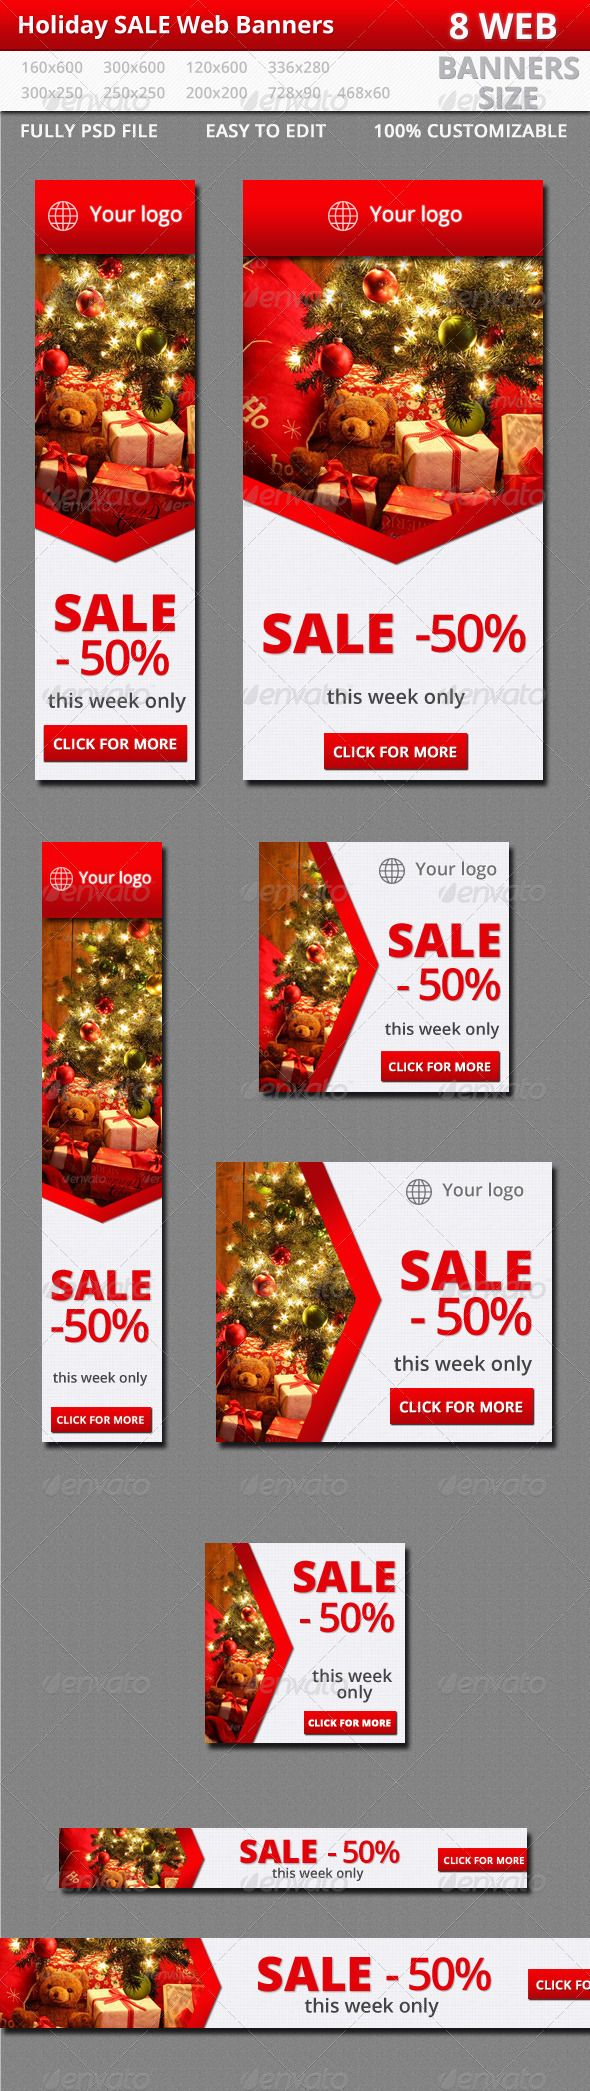 15 best BANNER images on Pinterest | Web banners, Banner template ...